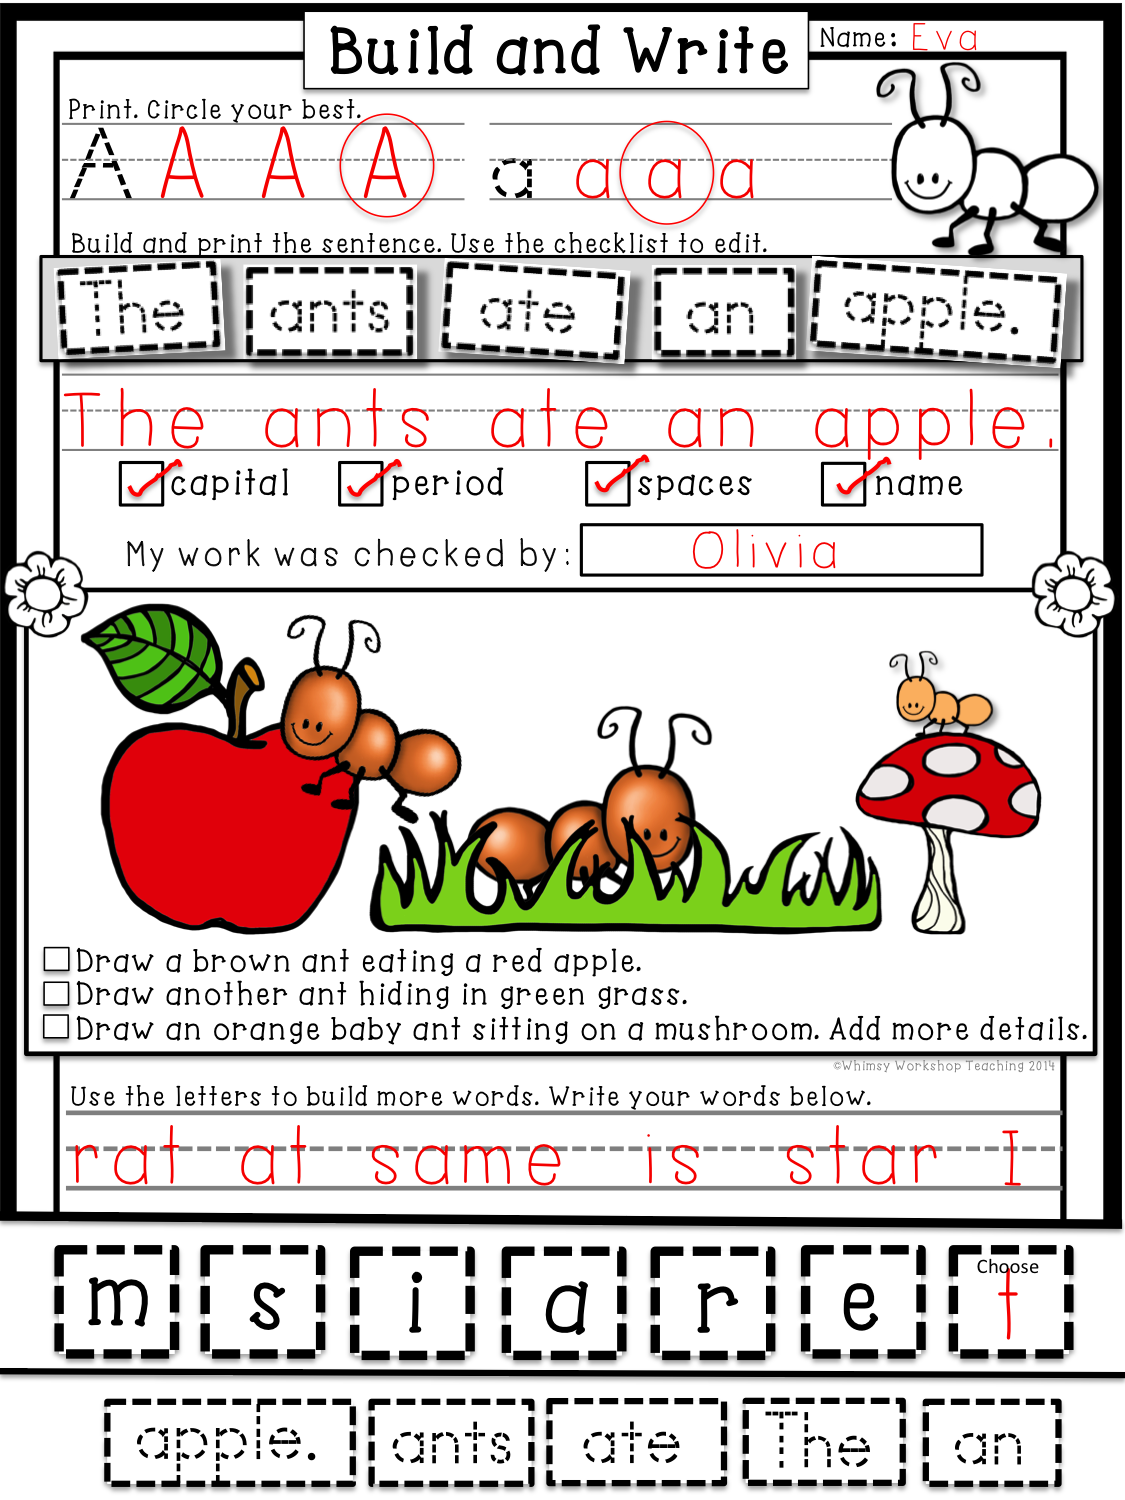 Build and Write Differentiated Phonics Workbook and